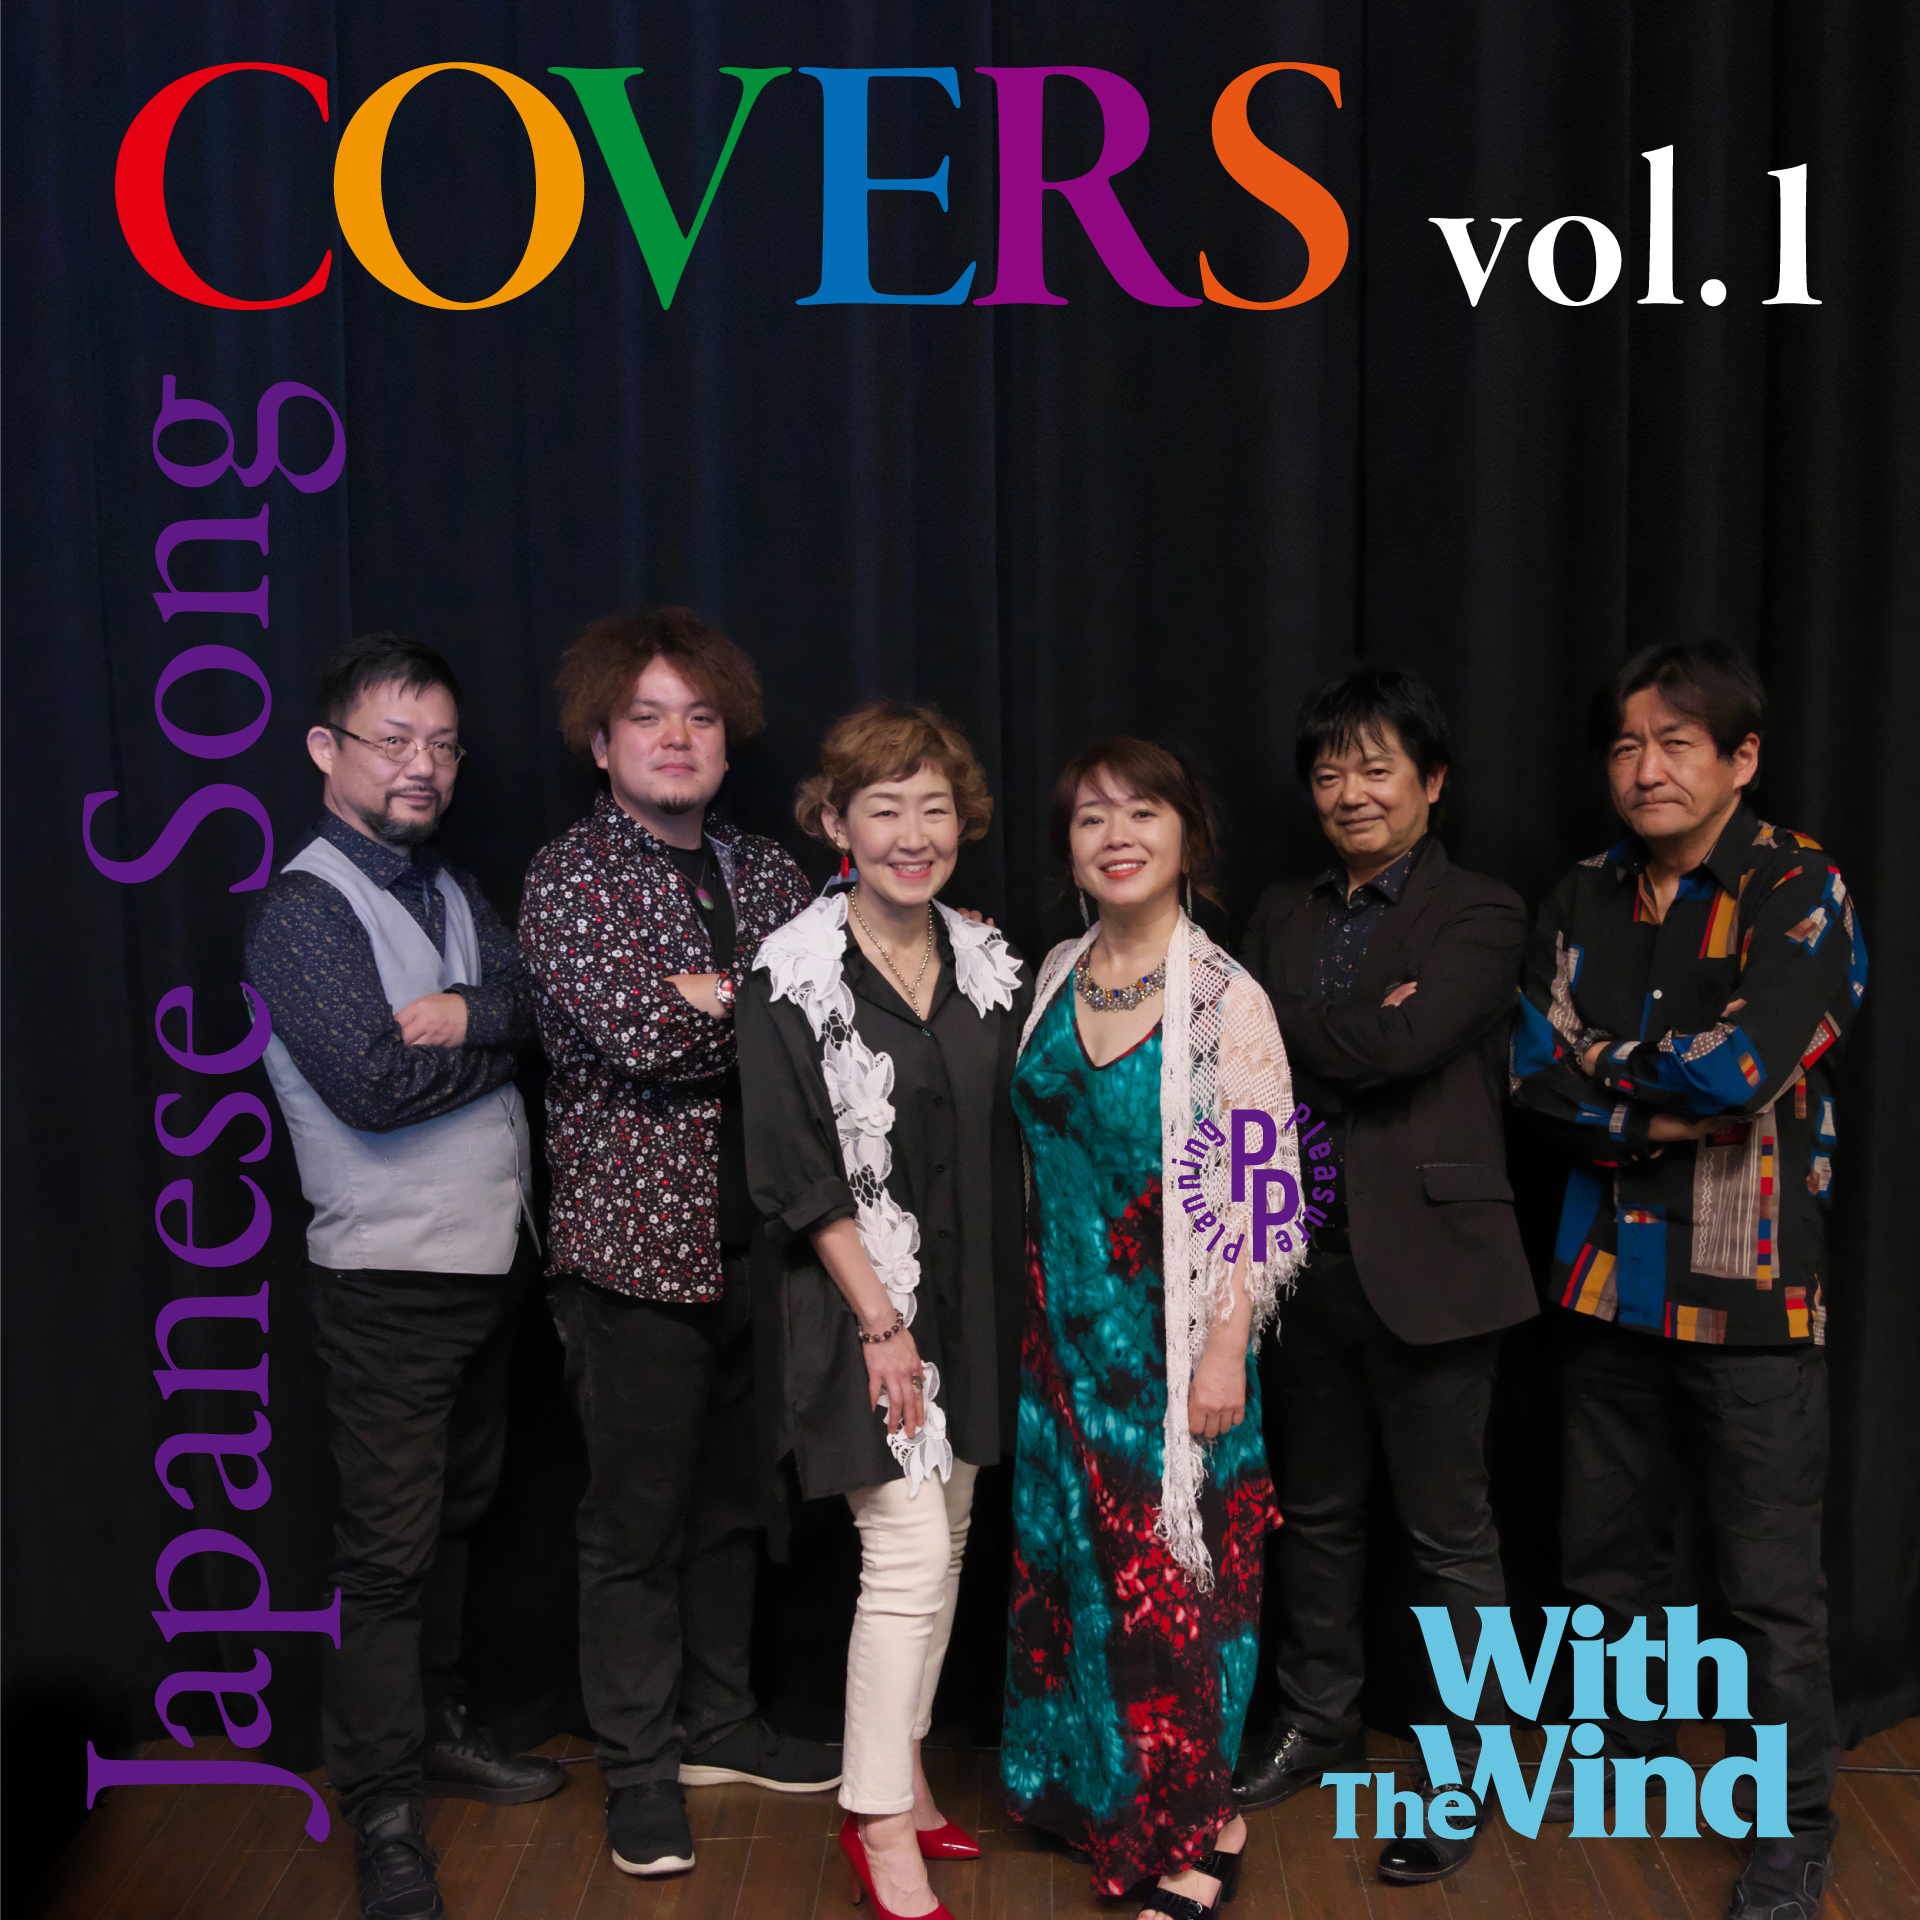 With The Wind / JapaneseSongCovers vol.1 リリースライブ‼